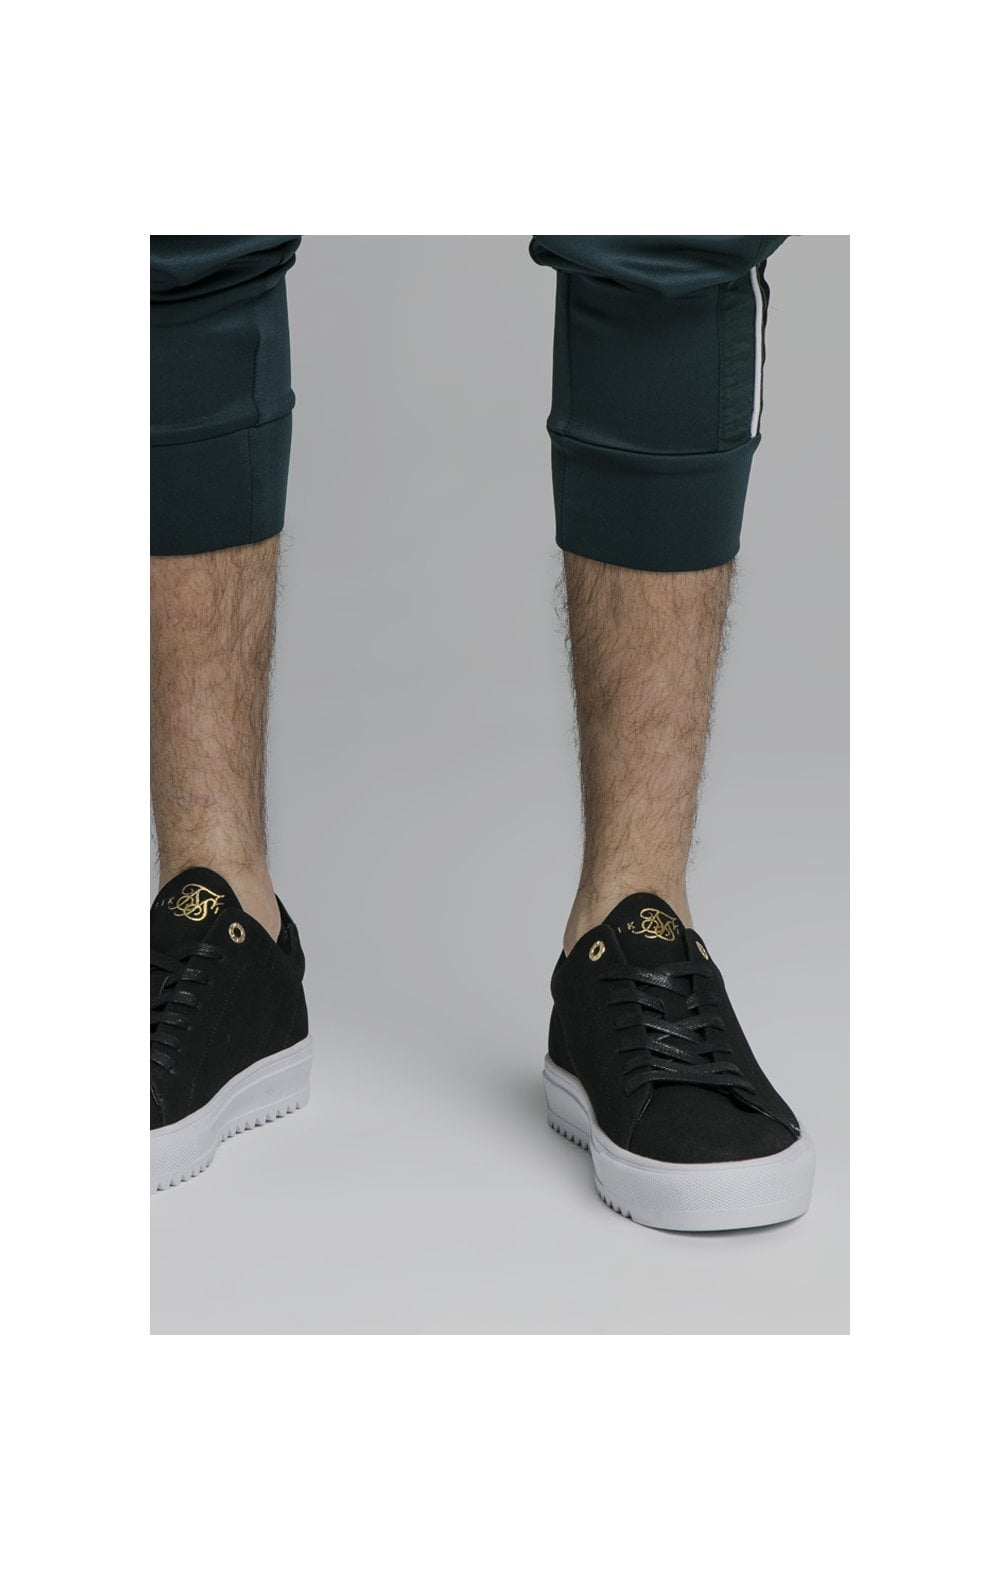 SikSilk Sprint - Black (8)